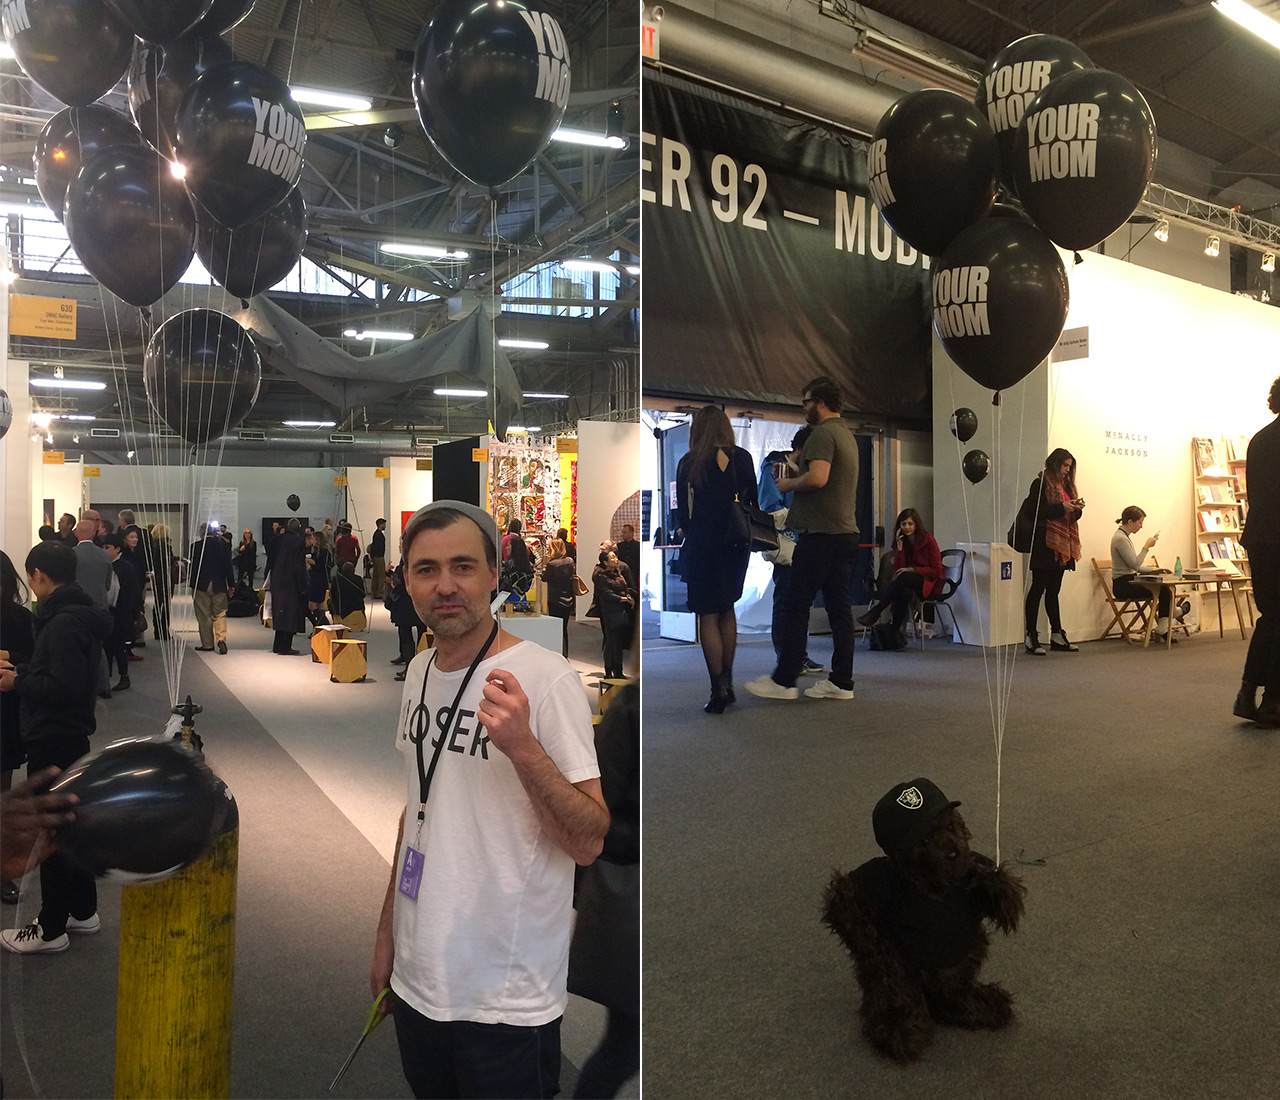 """Left: artist Ed Young handing out """"YOUR MOM"""" balloons in the 2016 Armory Show's Focus section; right: a teddy bear in an Oakland Raiders hat holding several of Ed Young's """"YOUR MOM"""" balloons at one of the 2016 Armory Show's main intersections"""